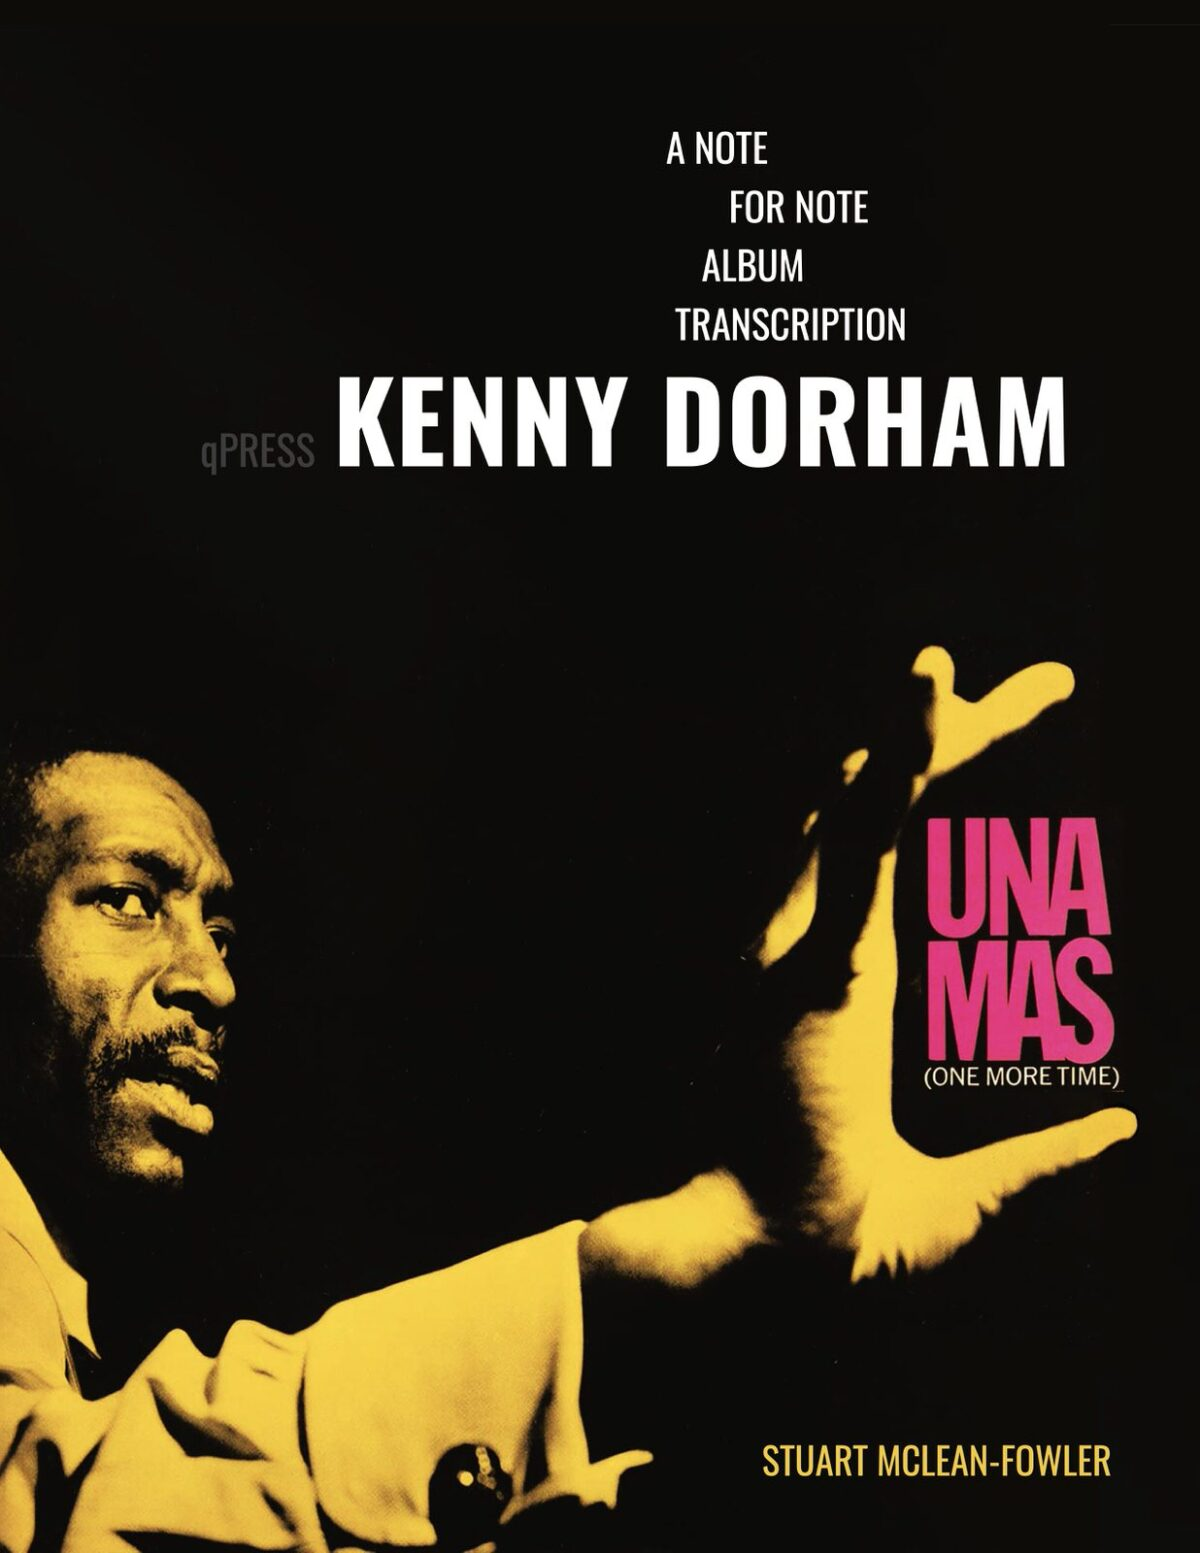 Dorham, Una Mas Complete Album Transcription-p01